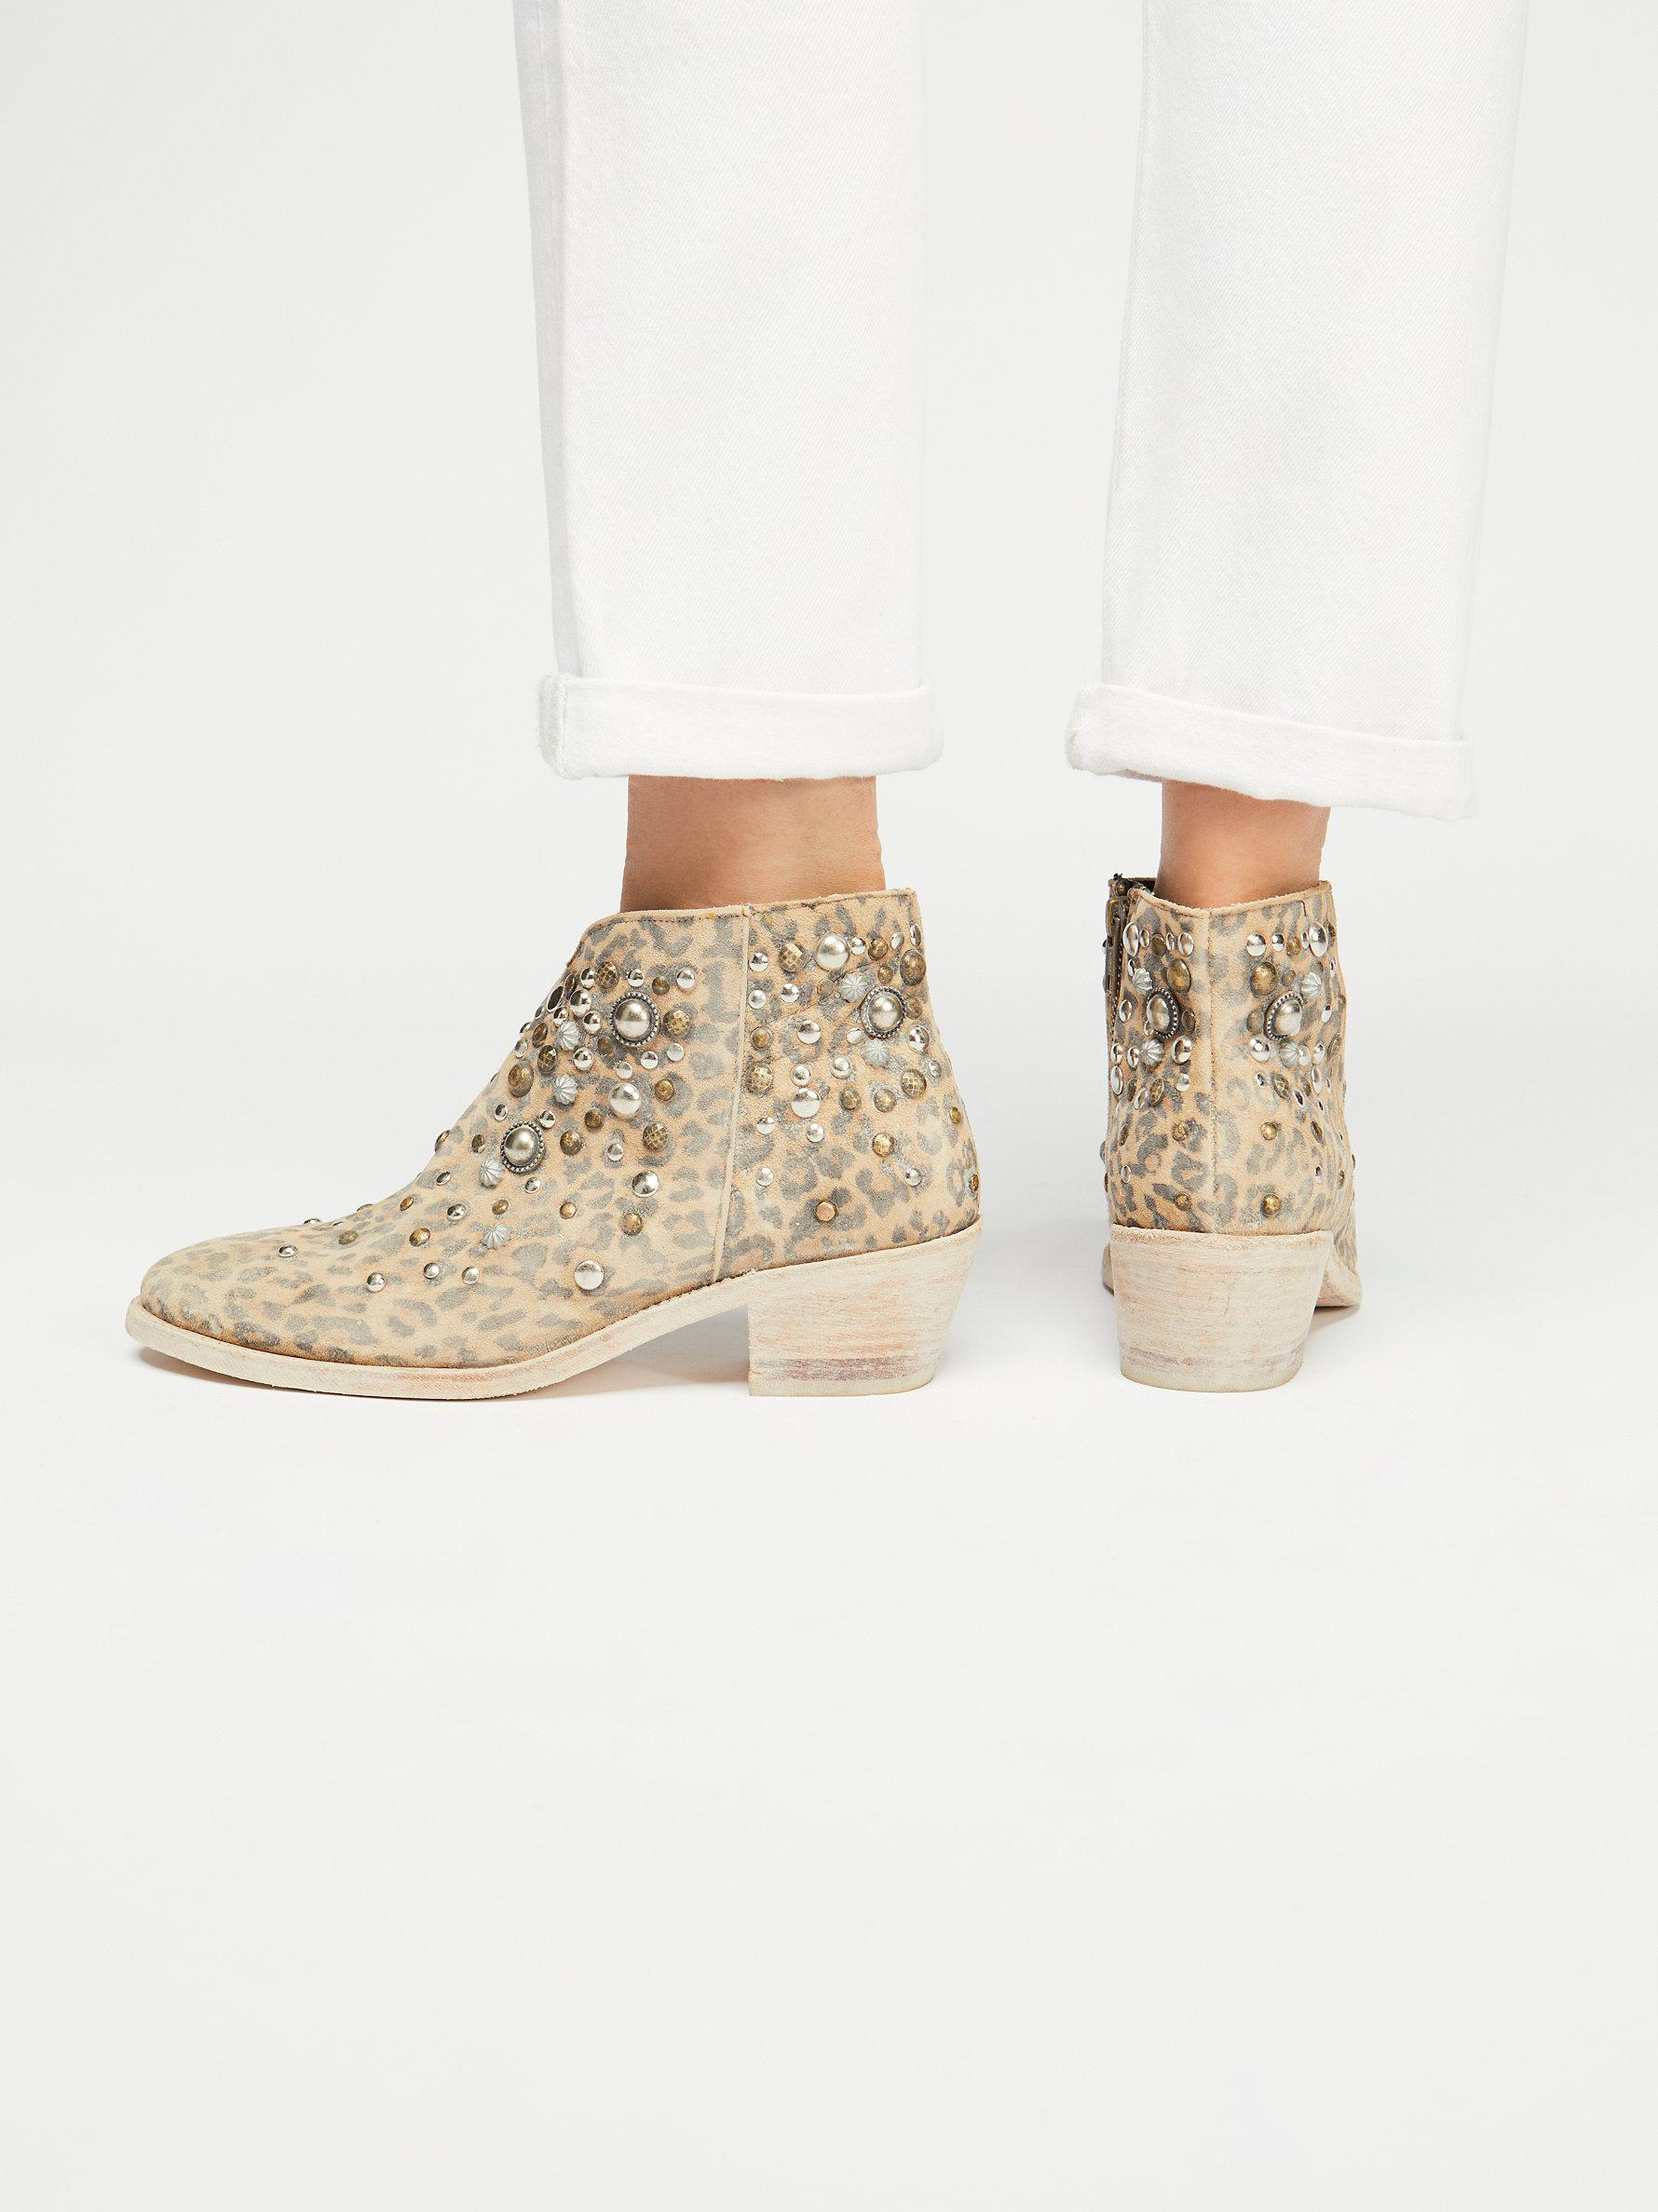 Free People Leather Vista Stud Boot in Leopard (Natural)